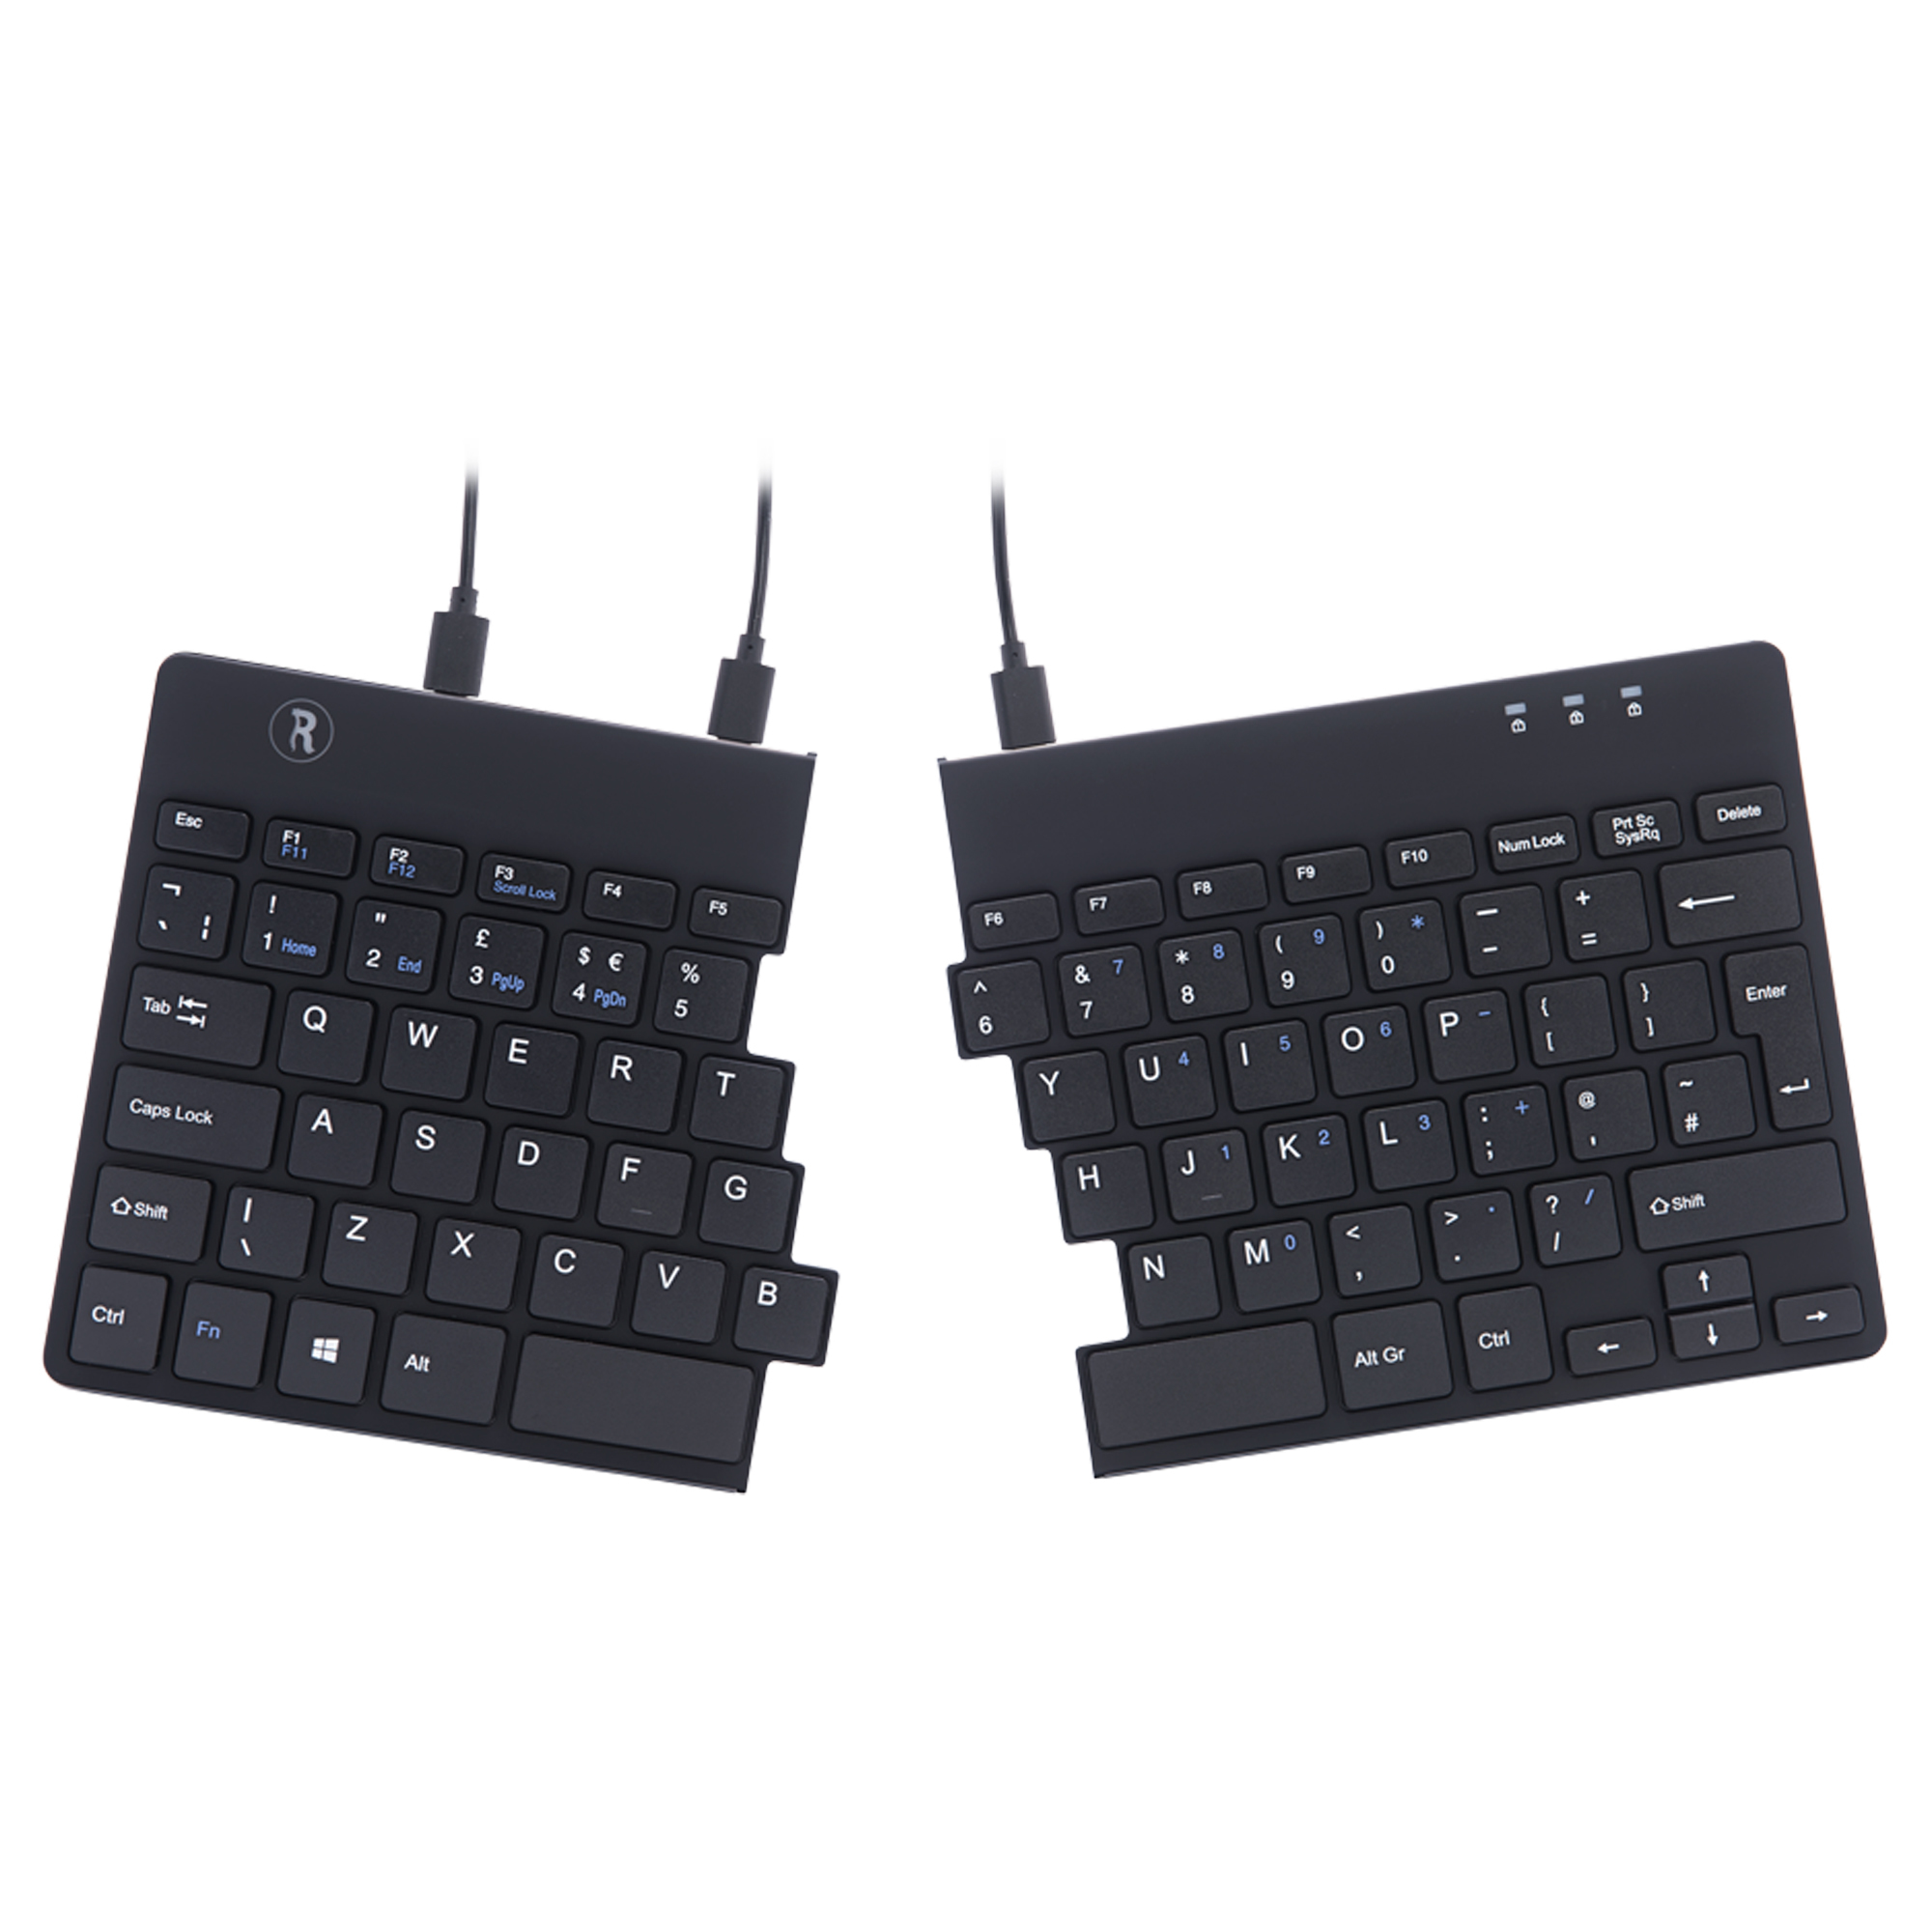 Split Ergonomic Keyboard Uk Layout Qwerty Blk Wired